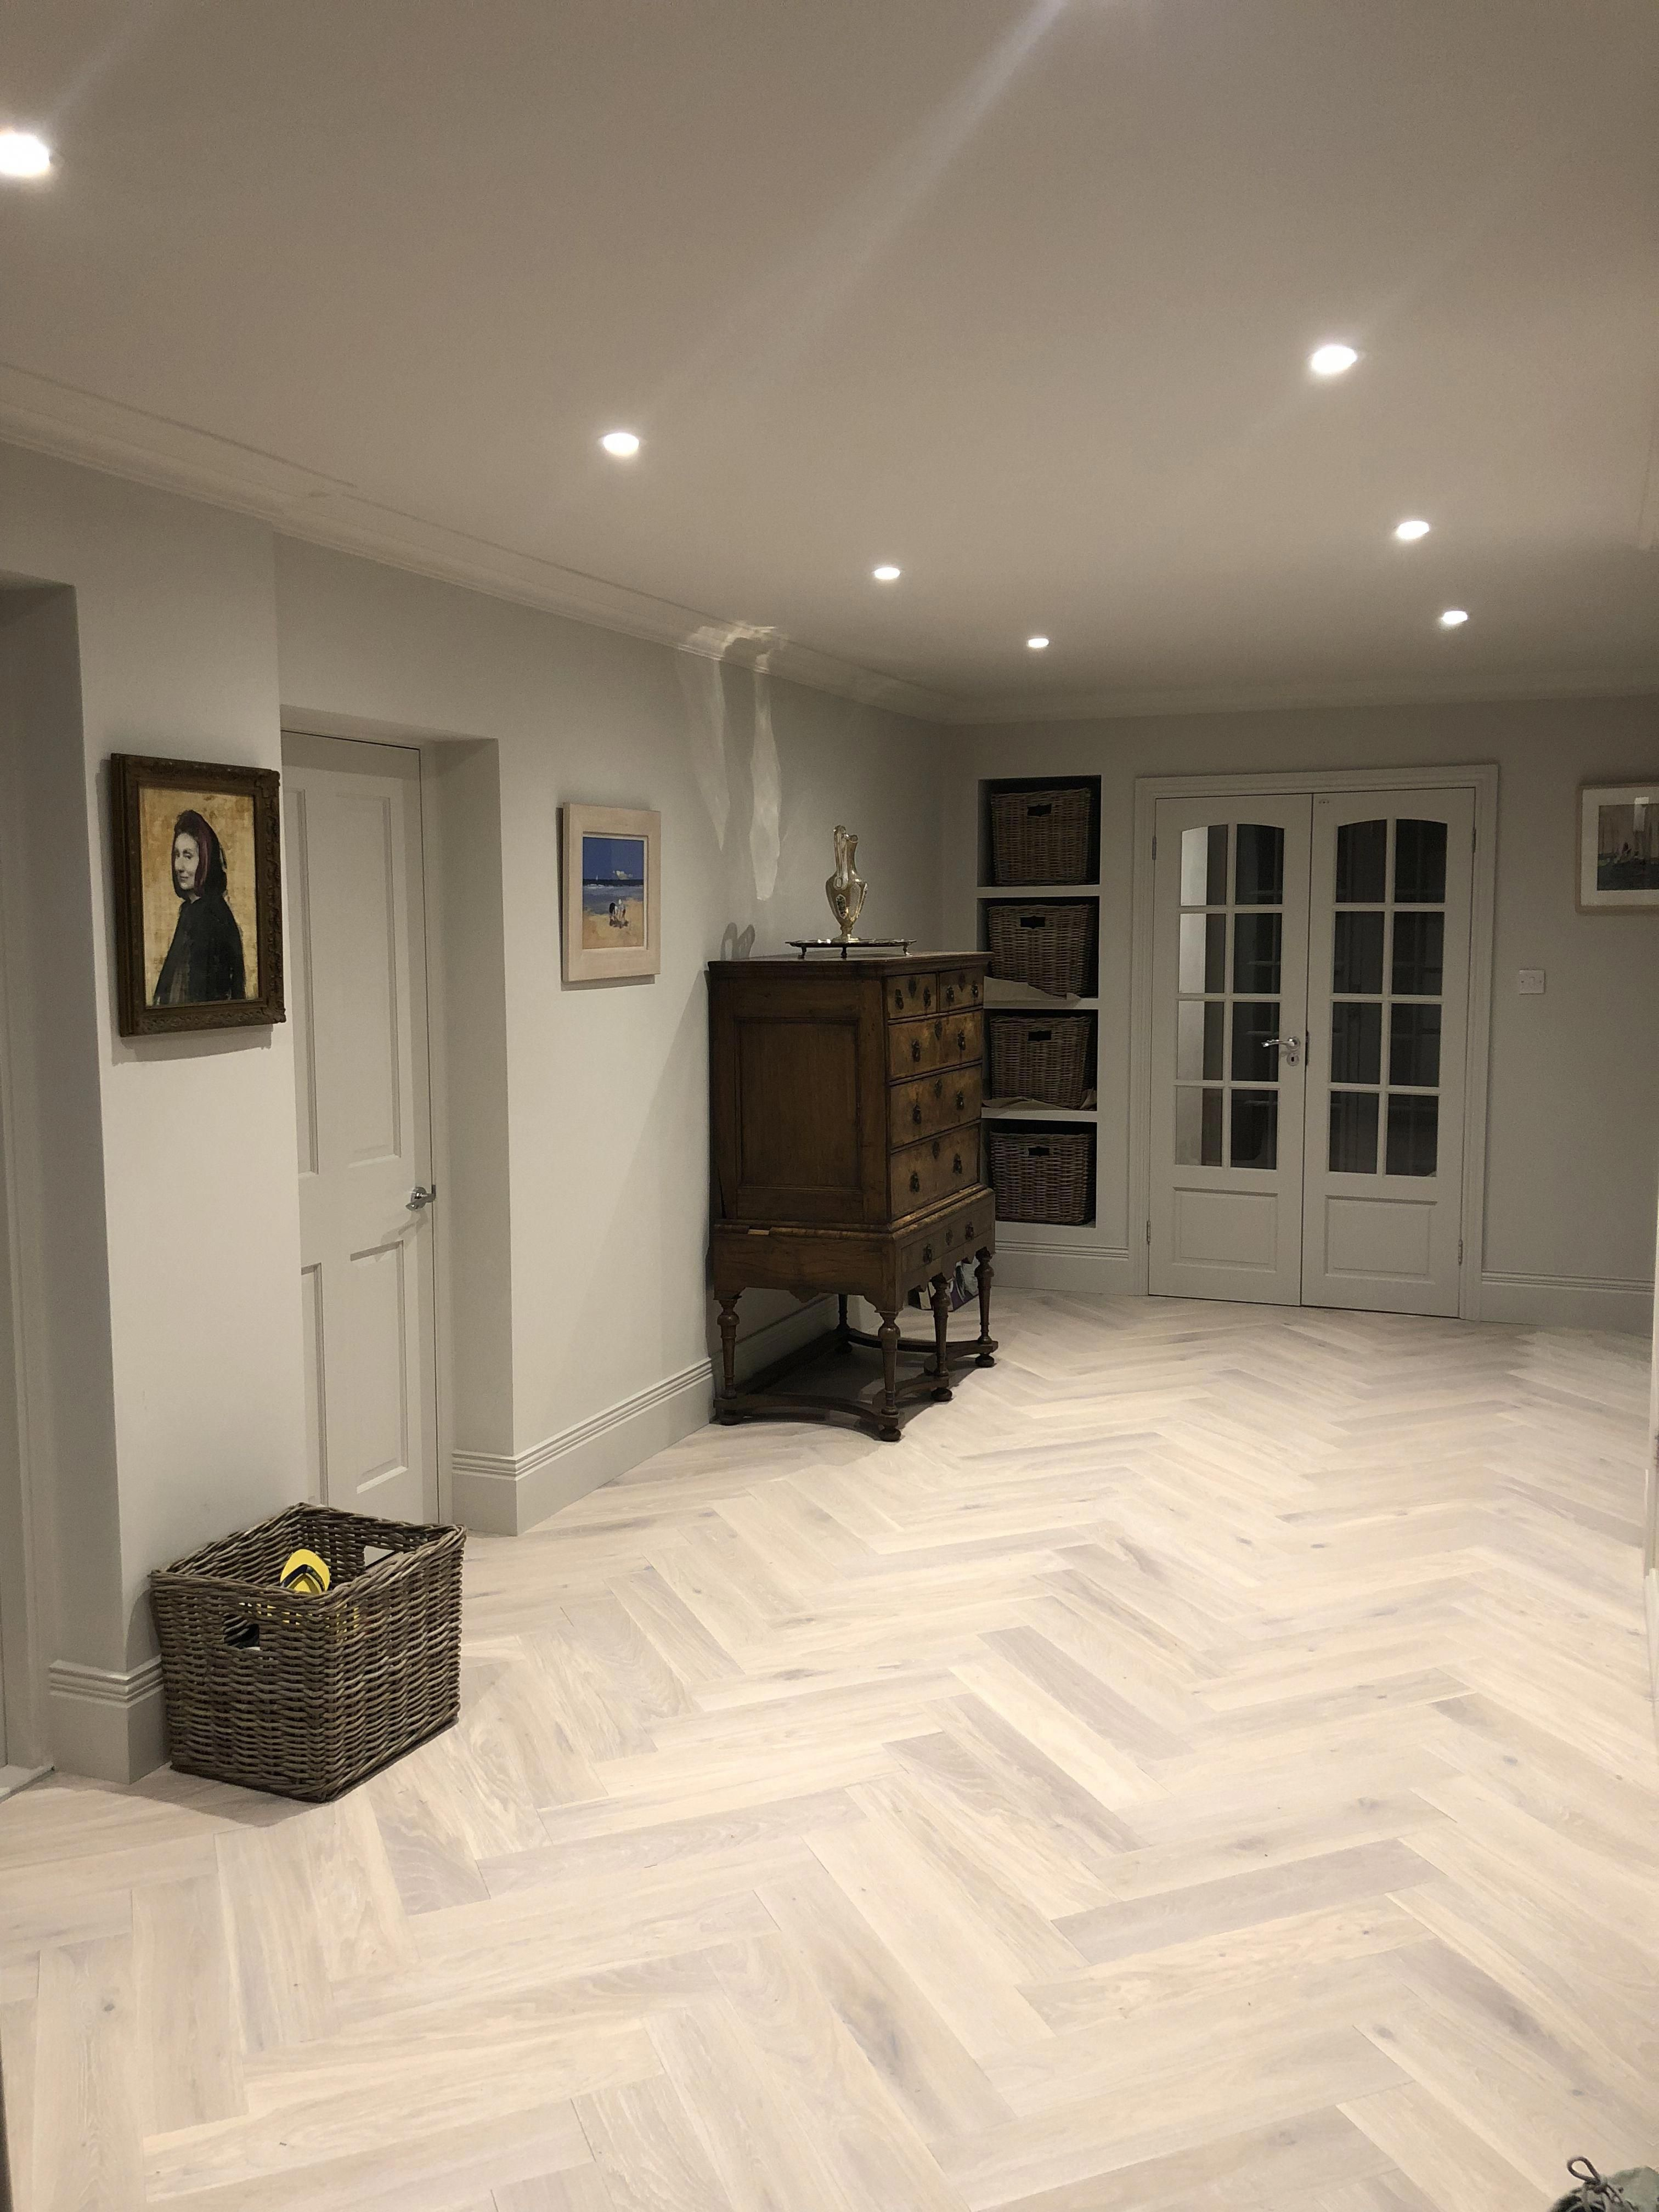 Astounding Choices To Look Into Cherryflooring In 2020